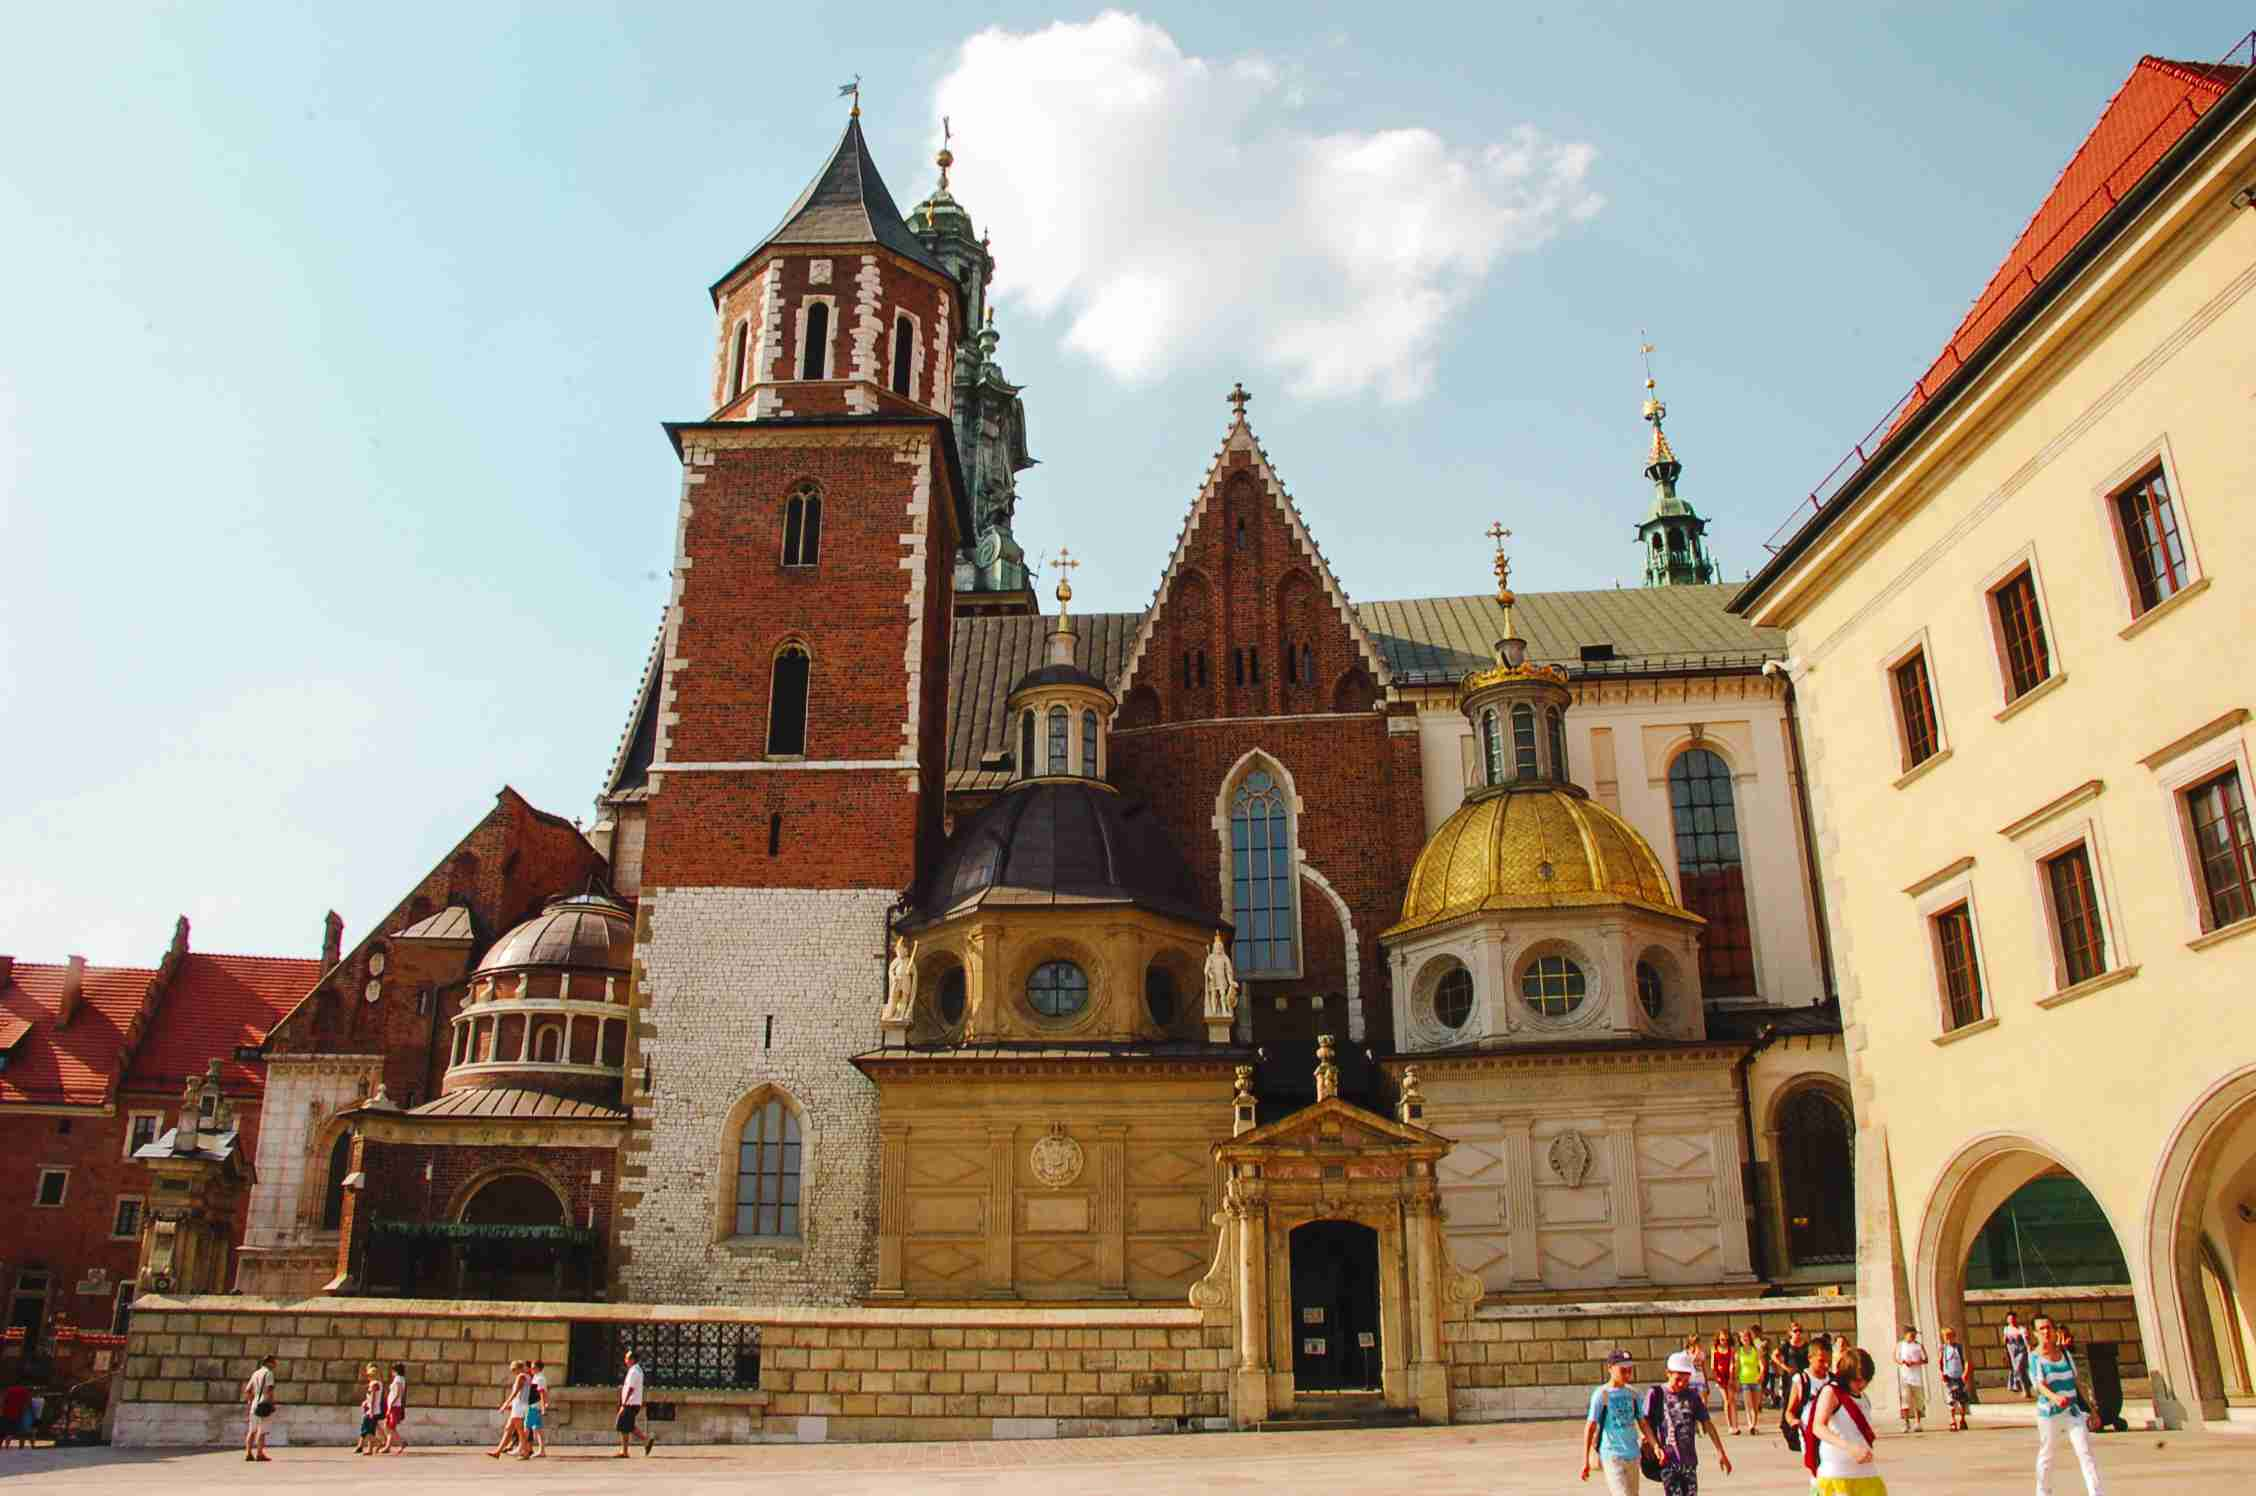 Cathedral in Krakow, Poland